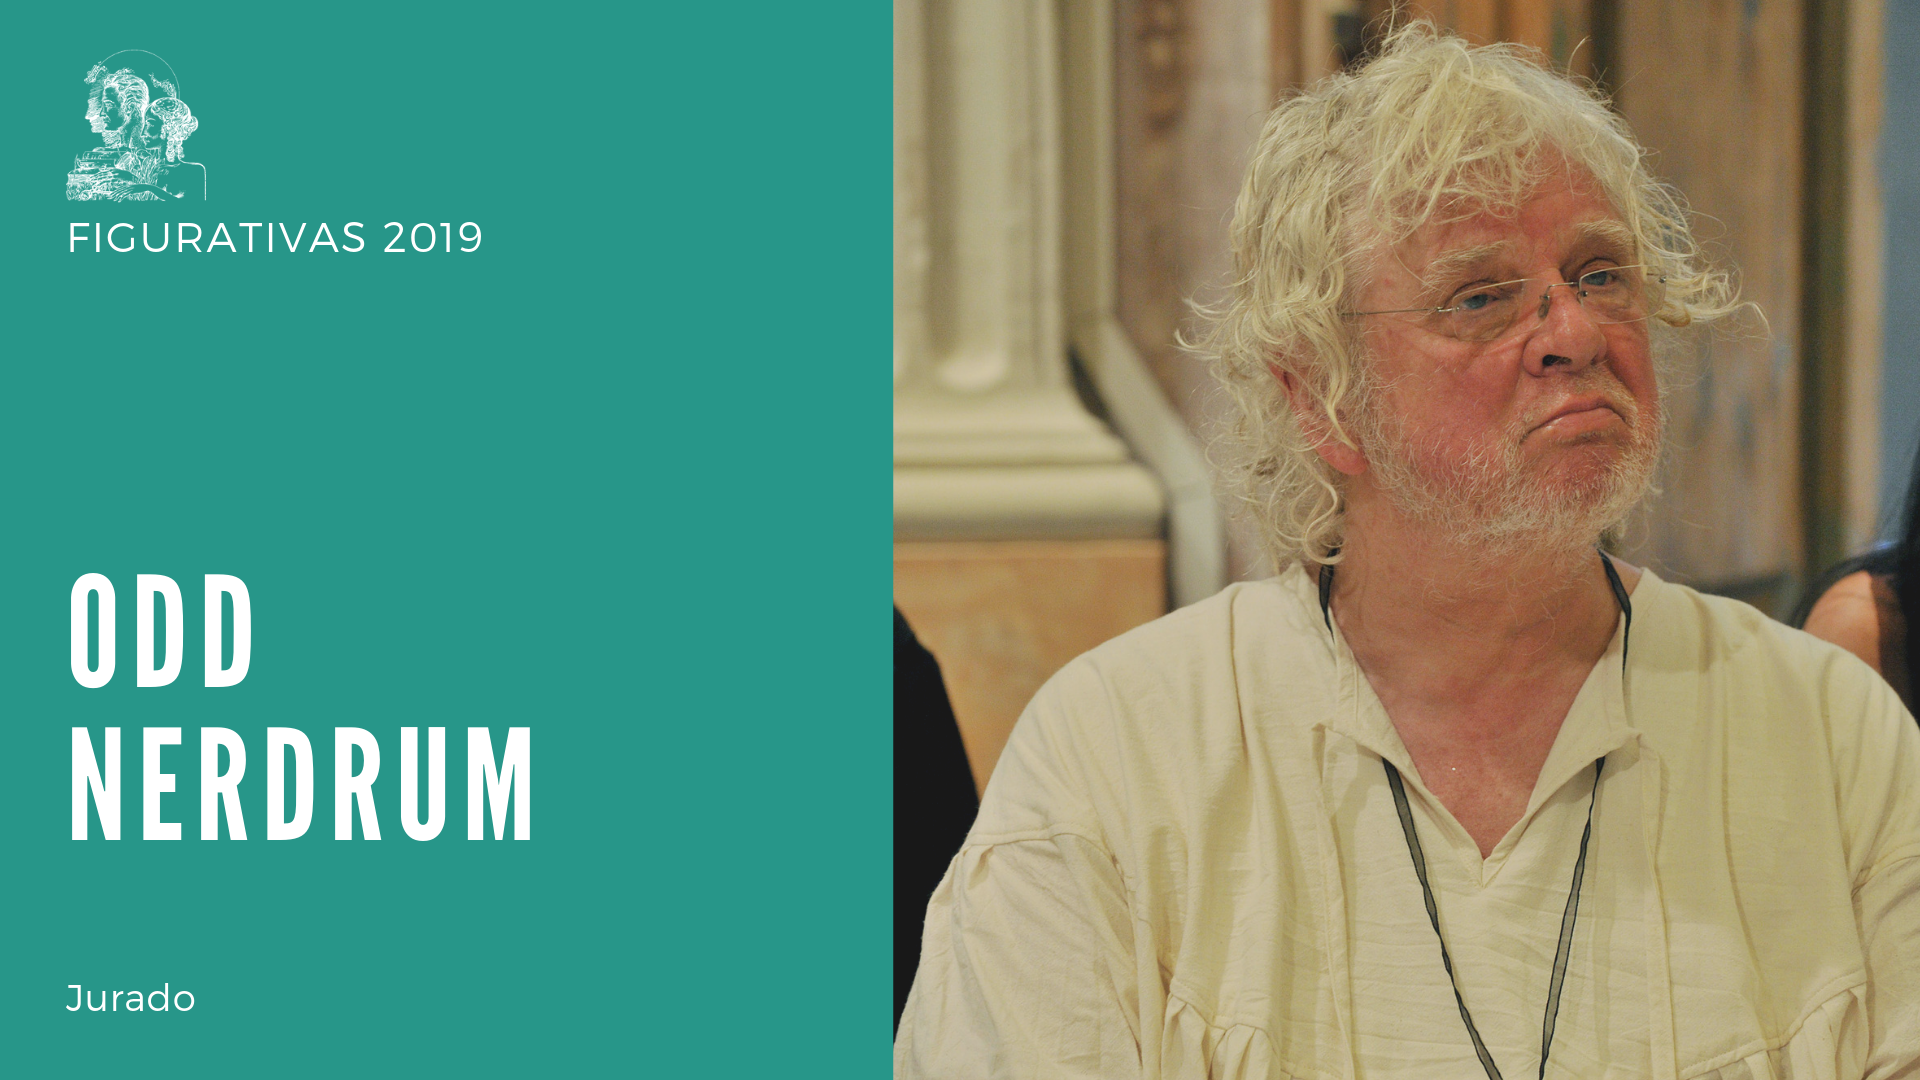 Odd Nerdrum, member of the jury of Figurativas 2019.